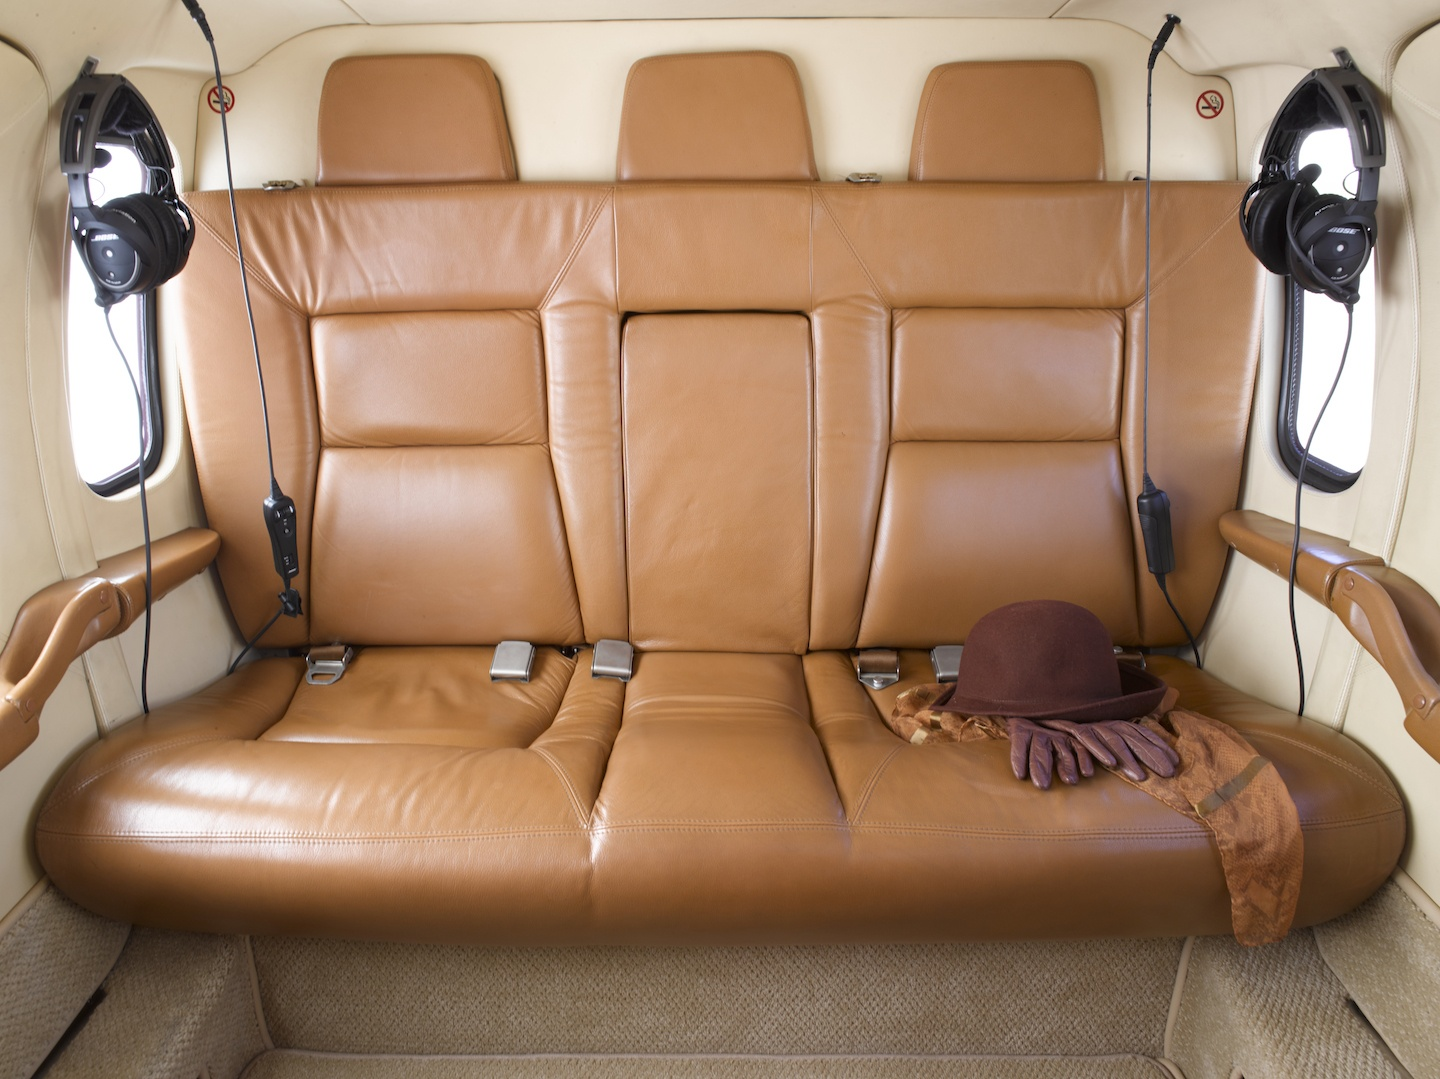 Luxurious leather seats in the 1999 Agusta A109E SN 11057 helicopter on Freestream